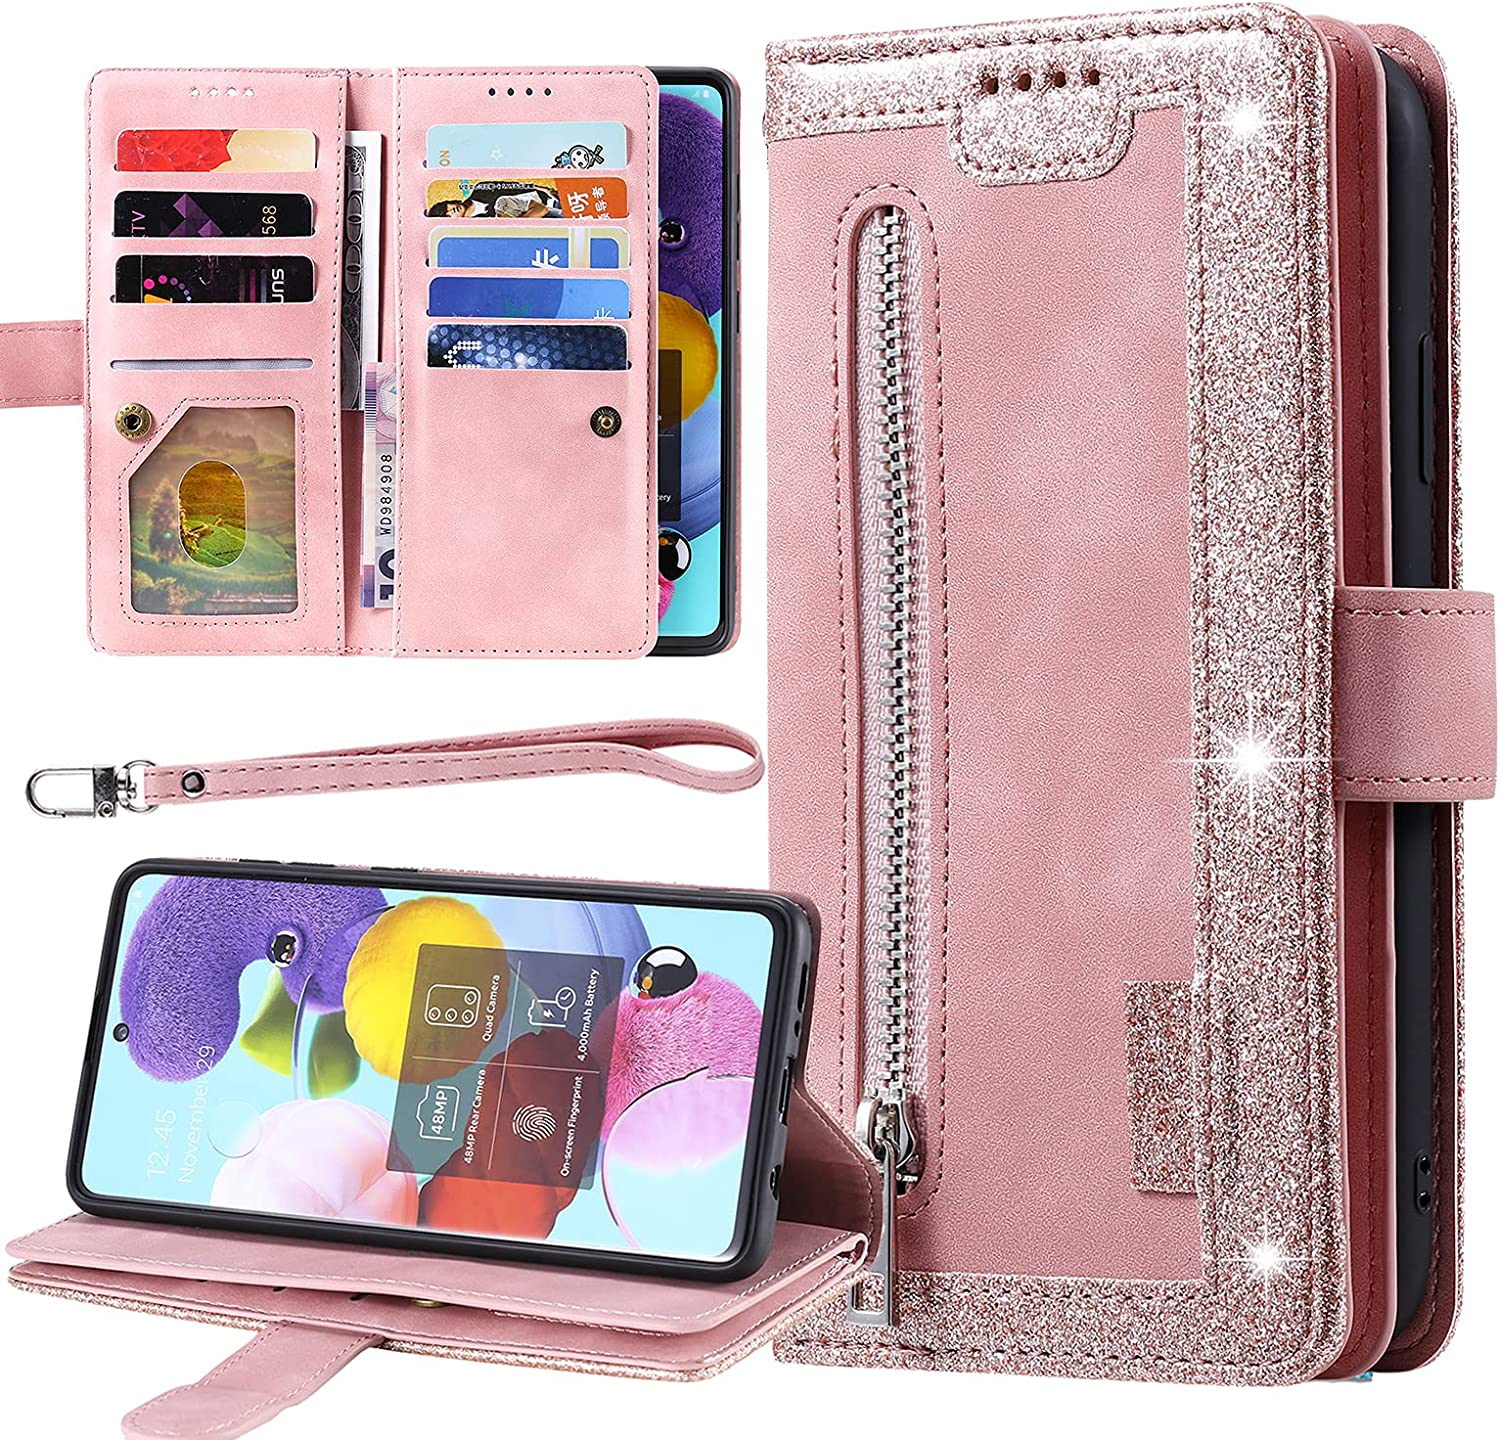 Galaxy A50 Bling Wallet Case, Harsel 9 Card Holder Premium PU Leather Wallet Women Purse Folio Flip Folding Cover Protective Shell with Lanyard Strap Wristlet and Zipper Pocket (Rose Gold)